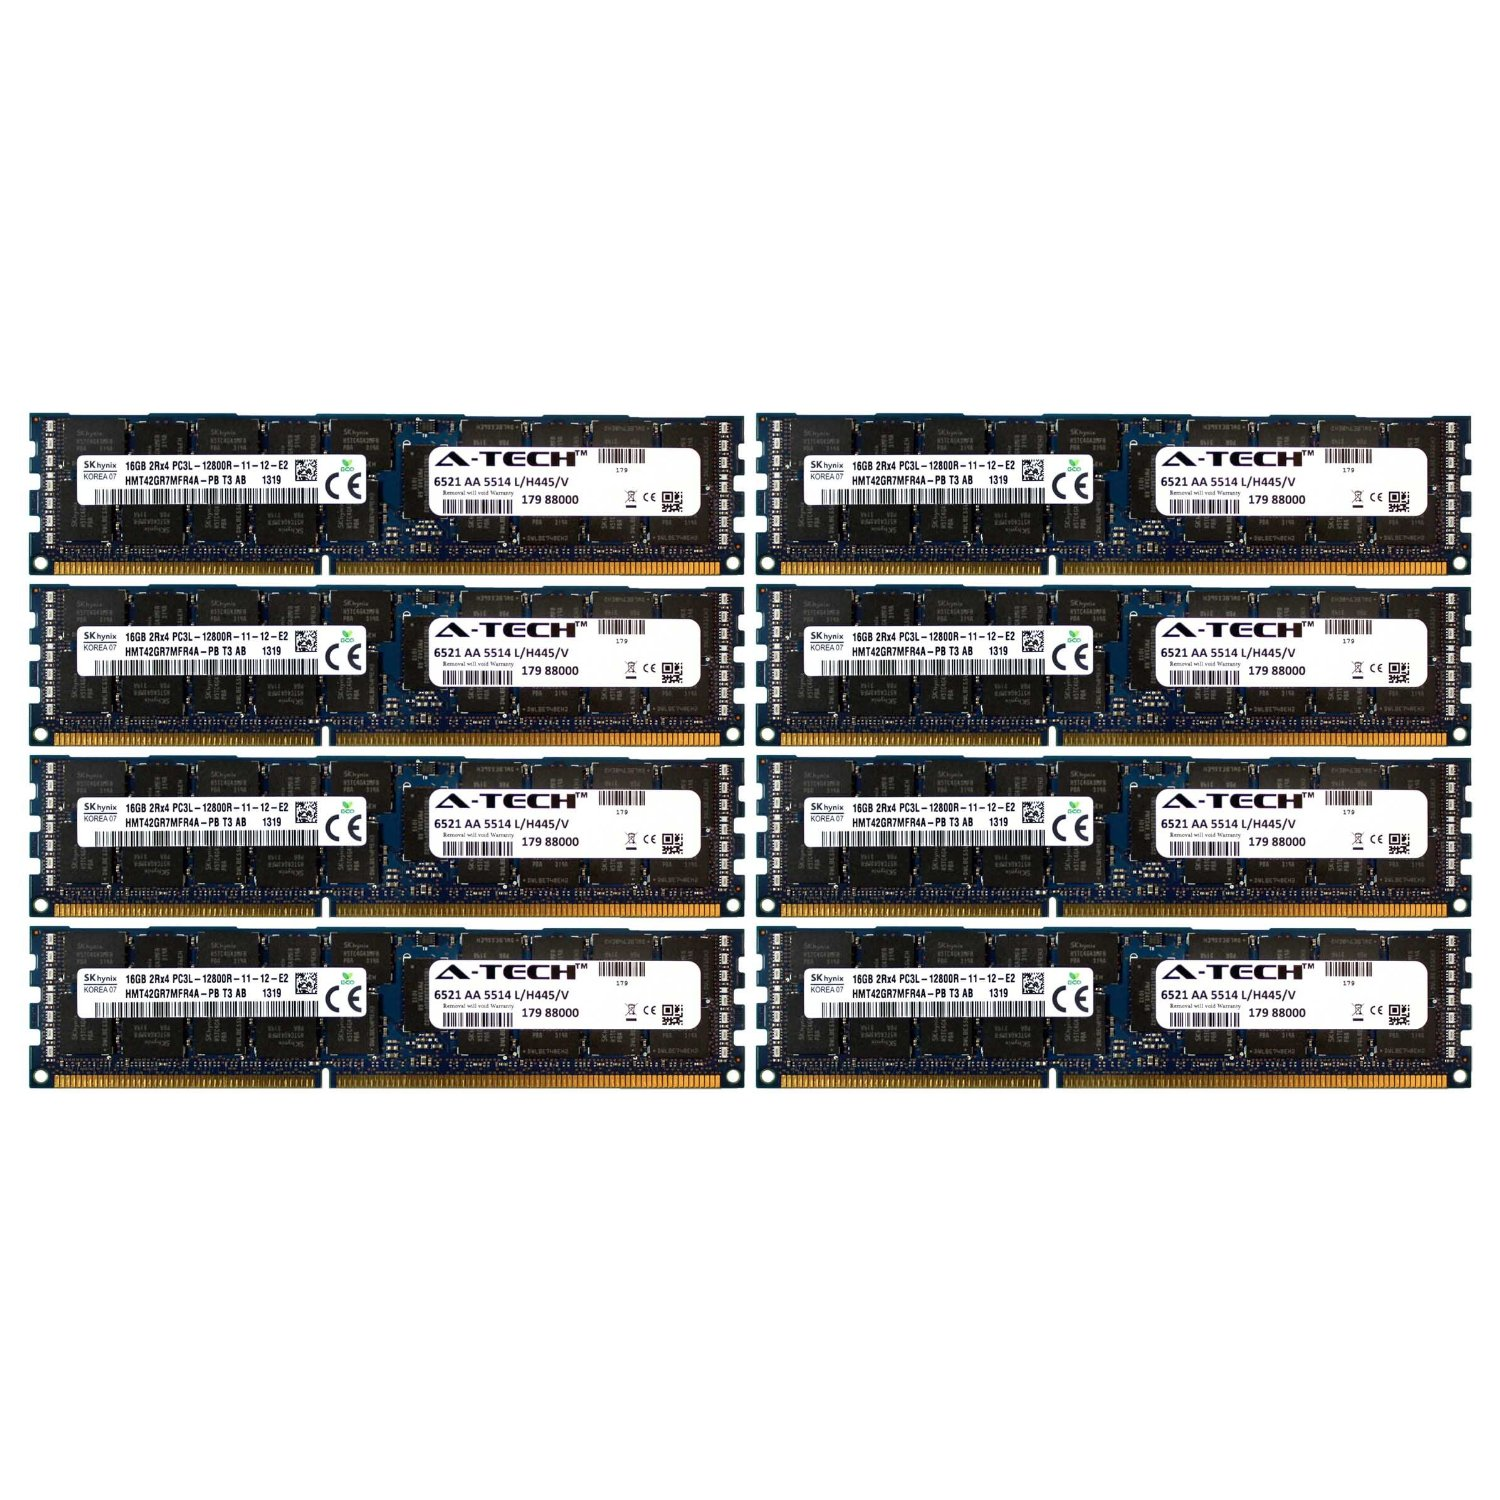 Cheap Proliant Dl580 G7, find Proliant Dl580 G7 deals on